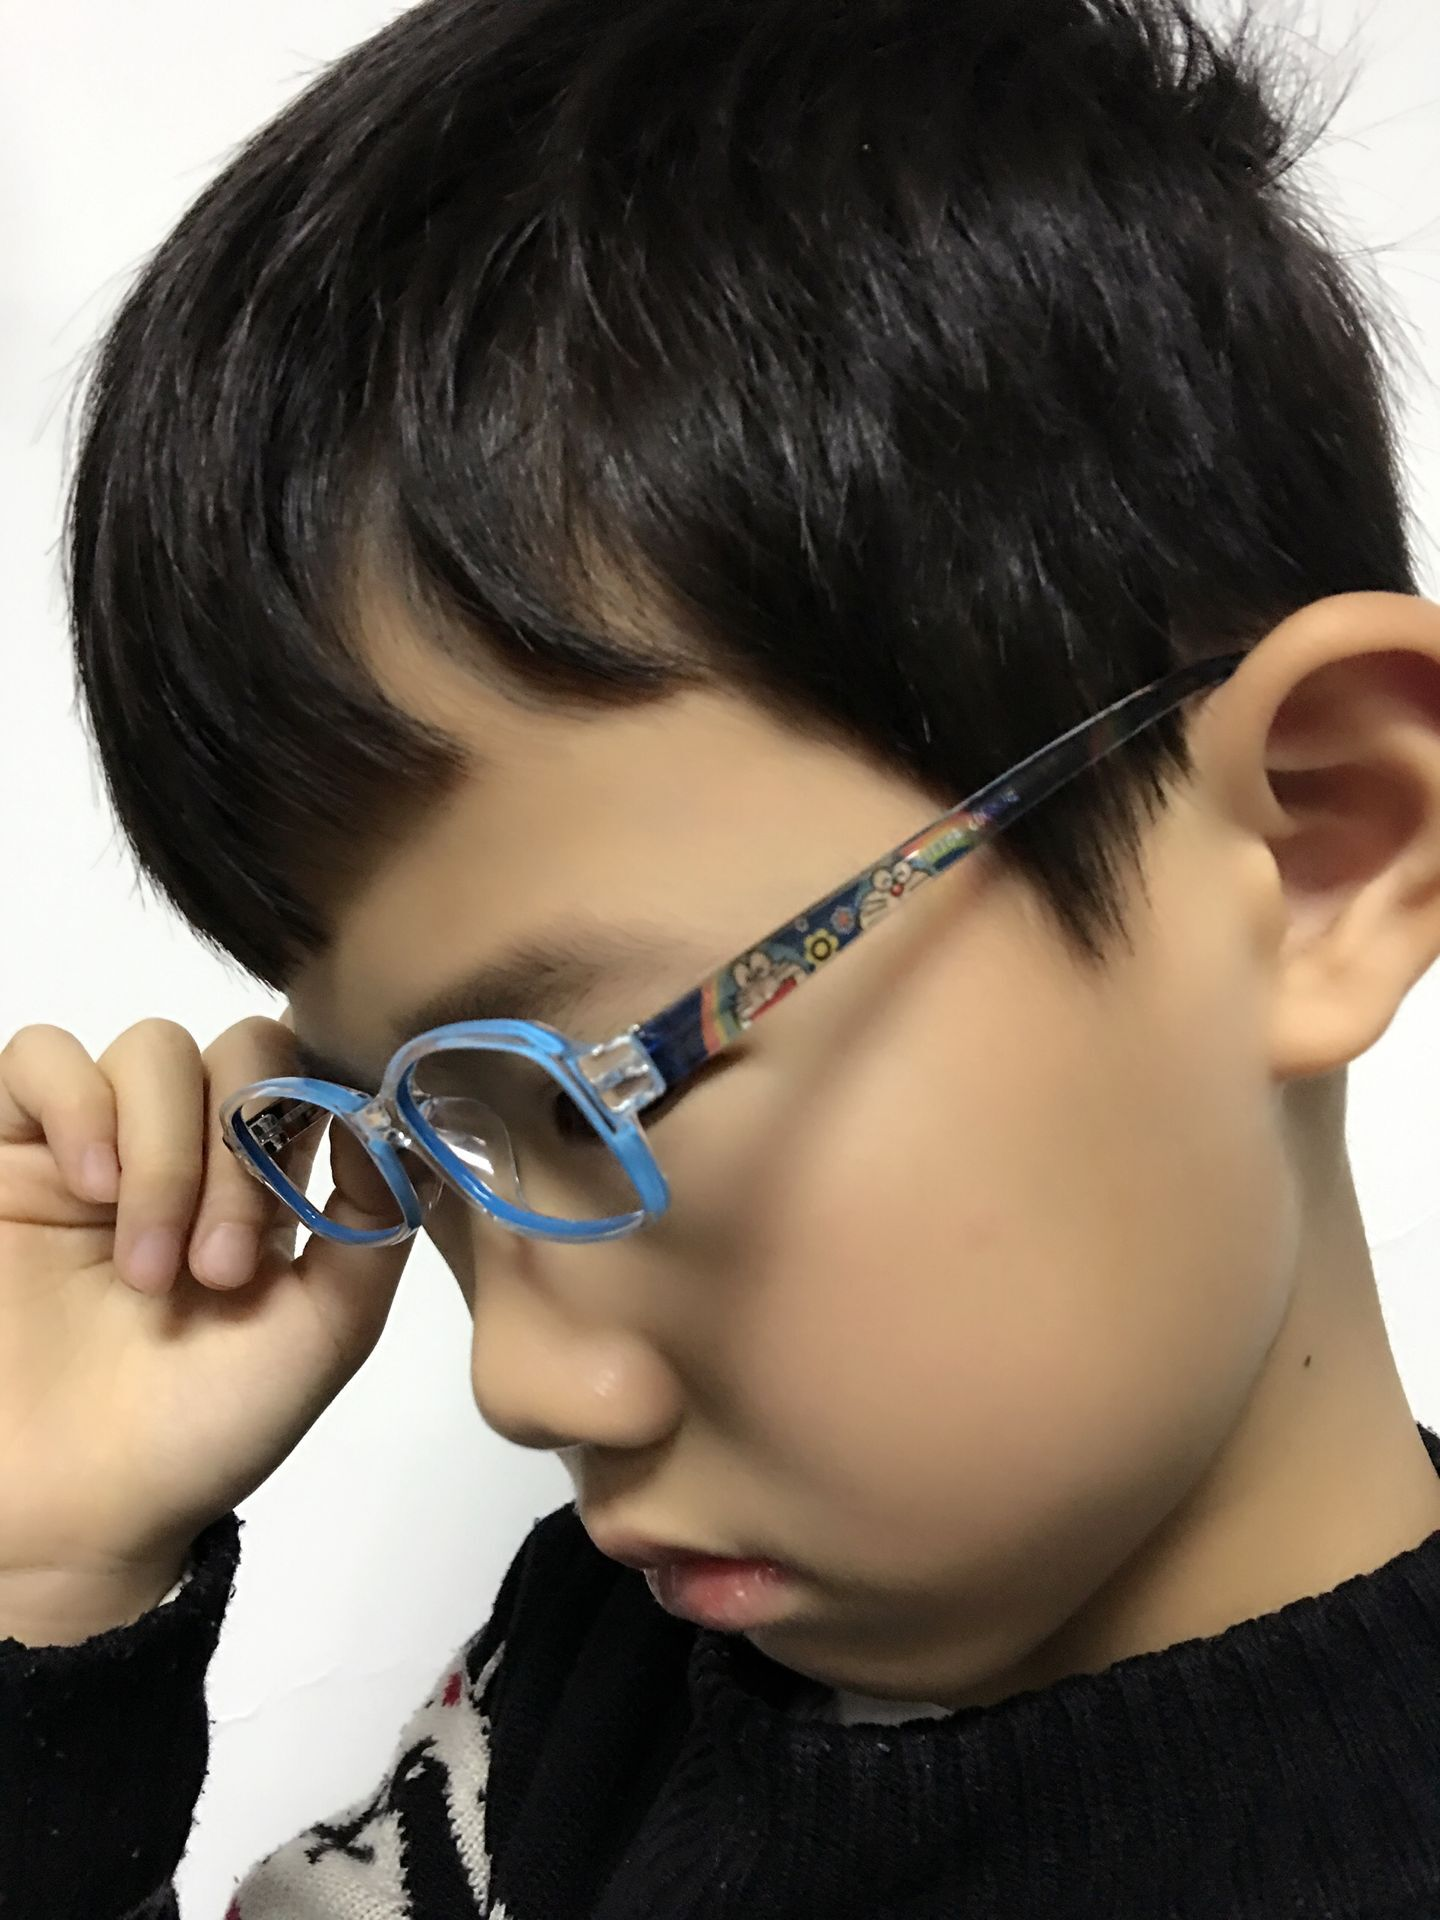 Bcfa korea lightweight men children schoolgirl cartoon square frame glasses myopia hyperopia amblyopia glasses new